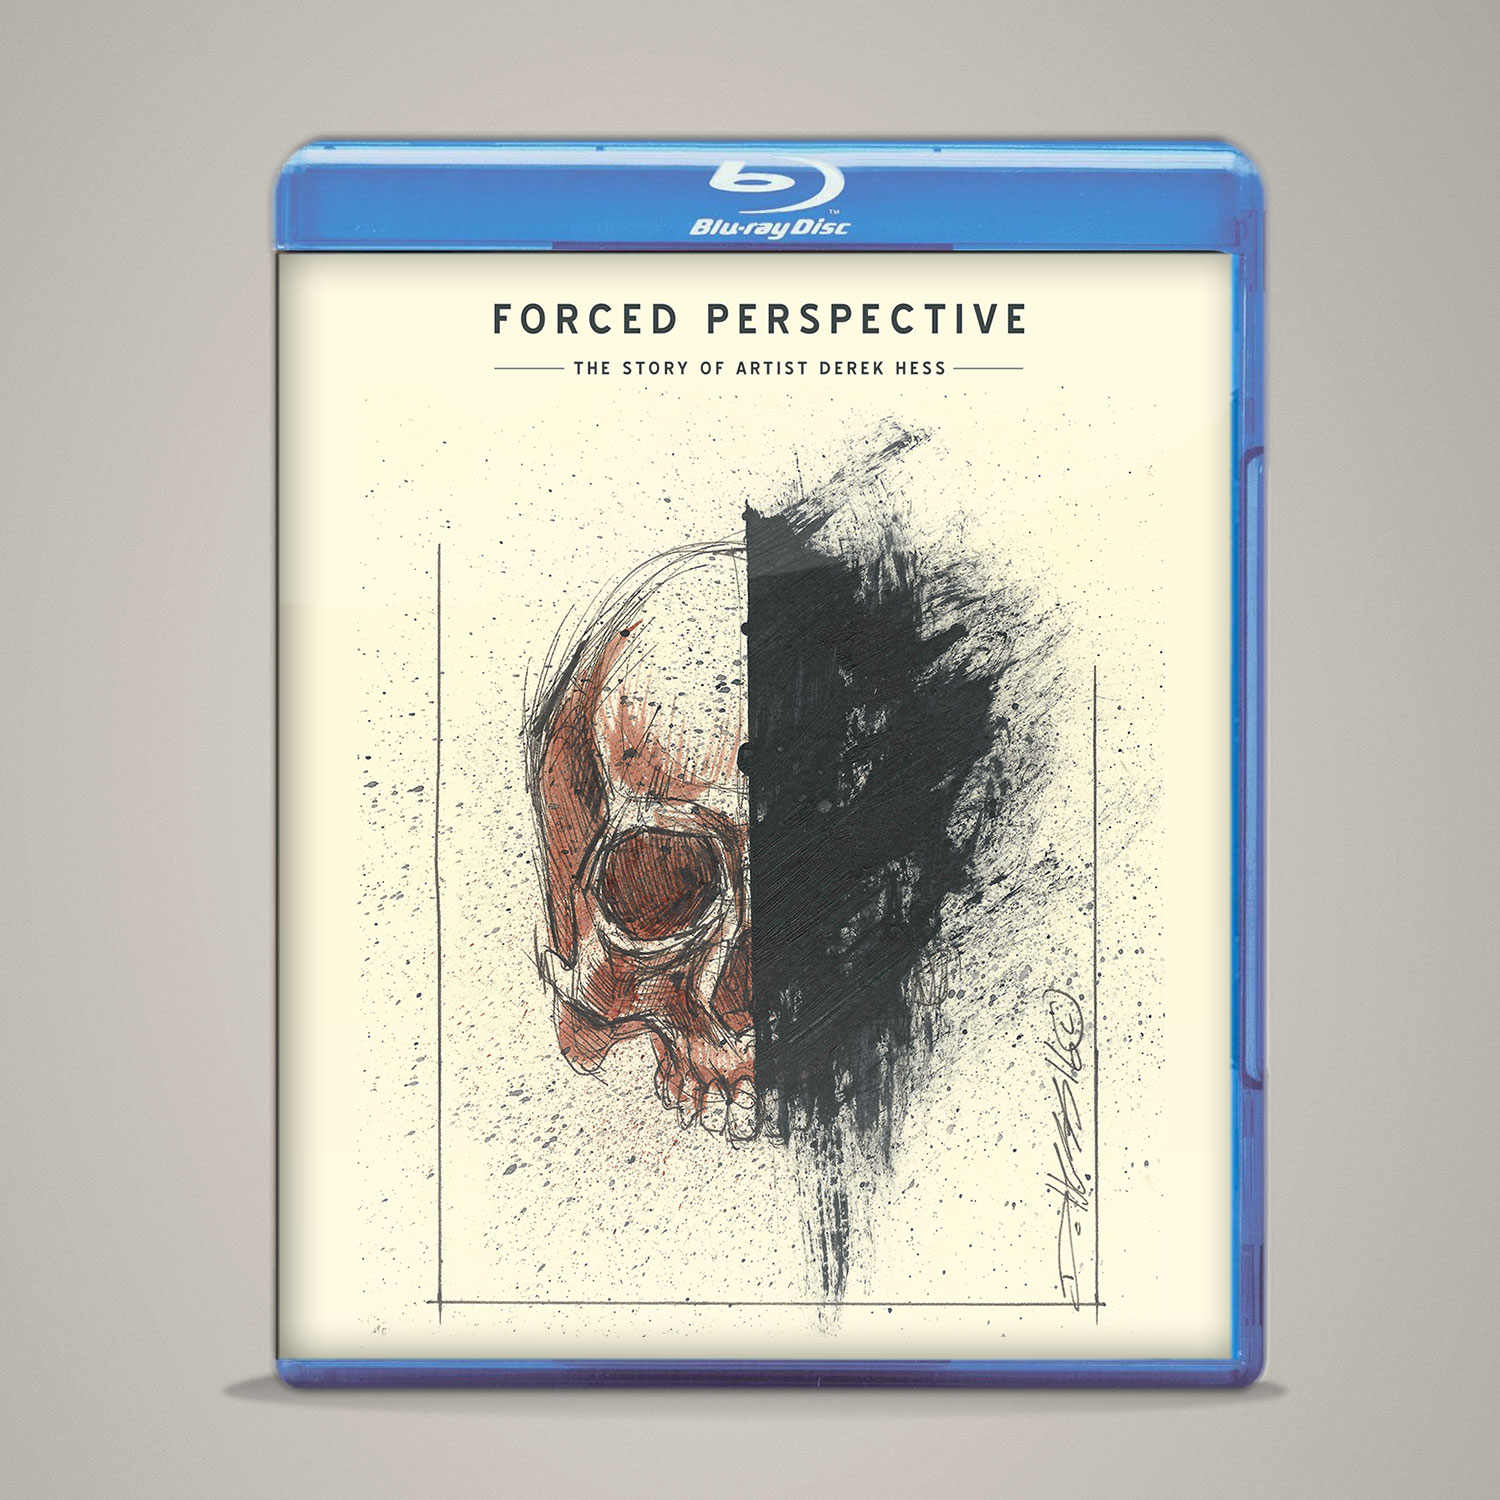 forced perspective blu ray book bundle bundle forced perspective